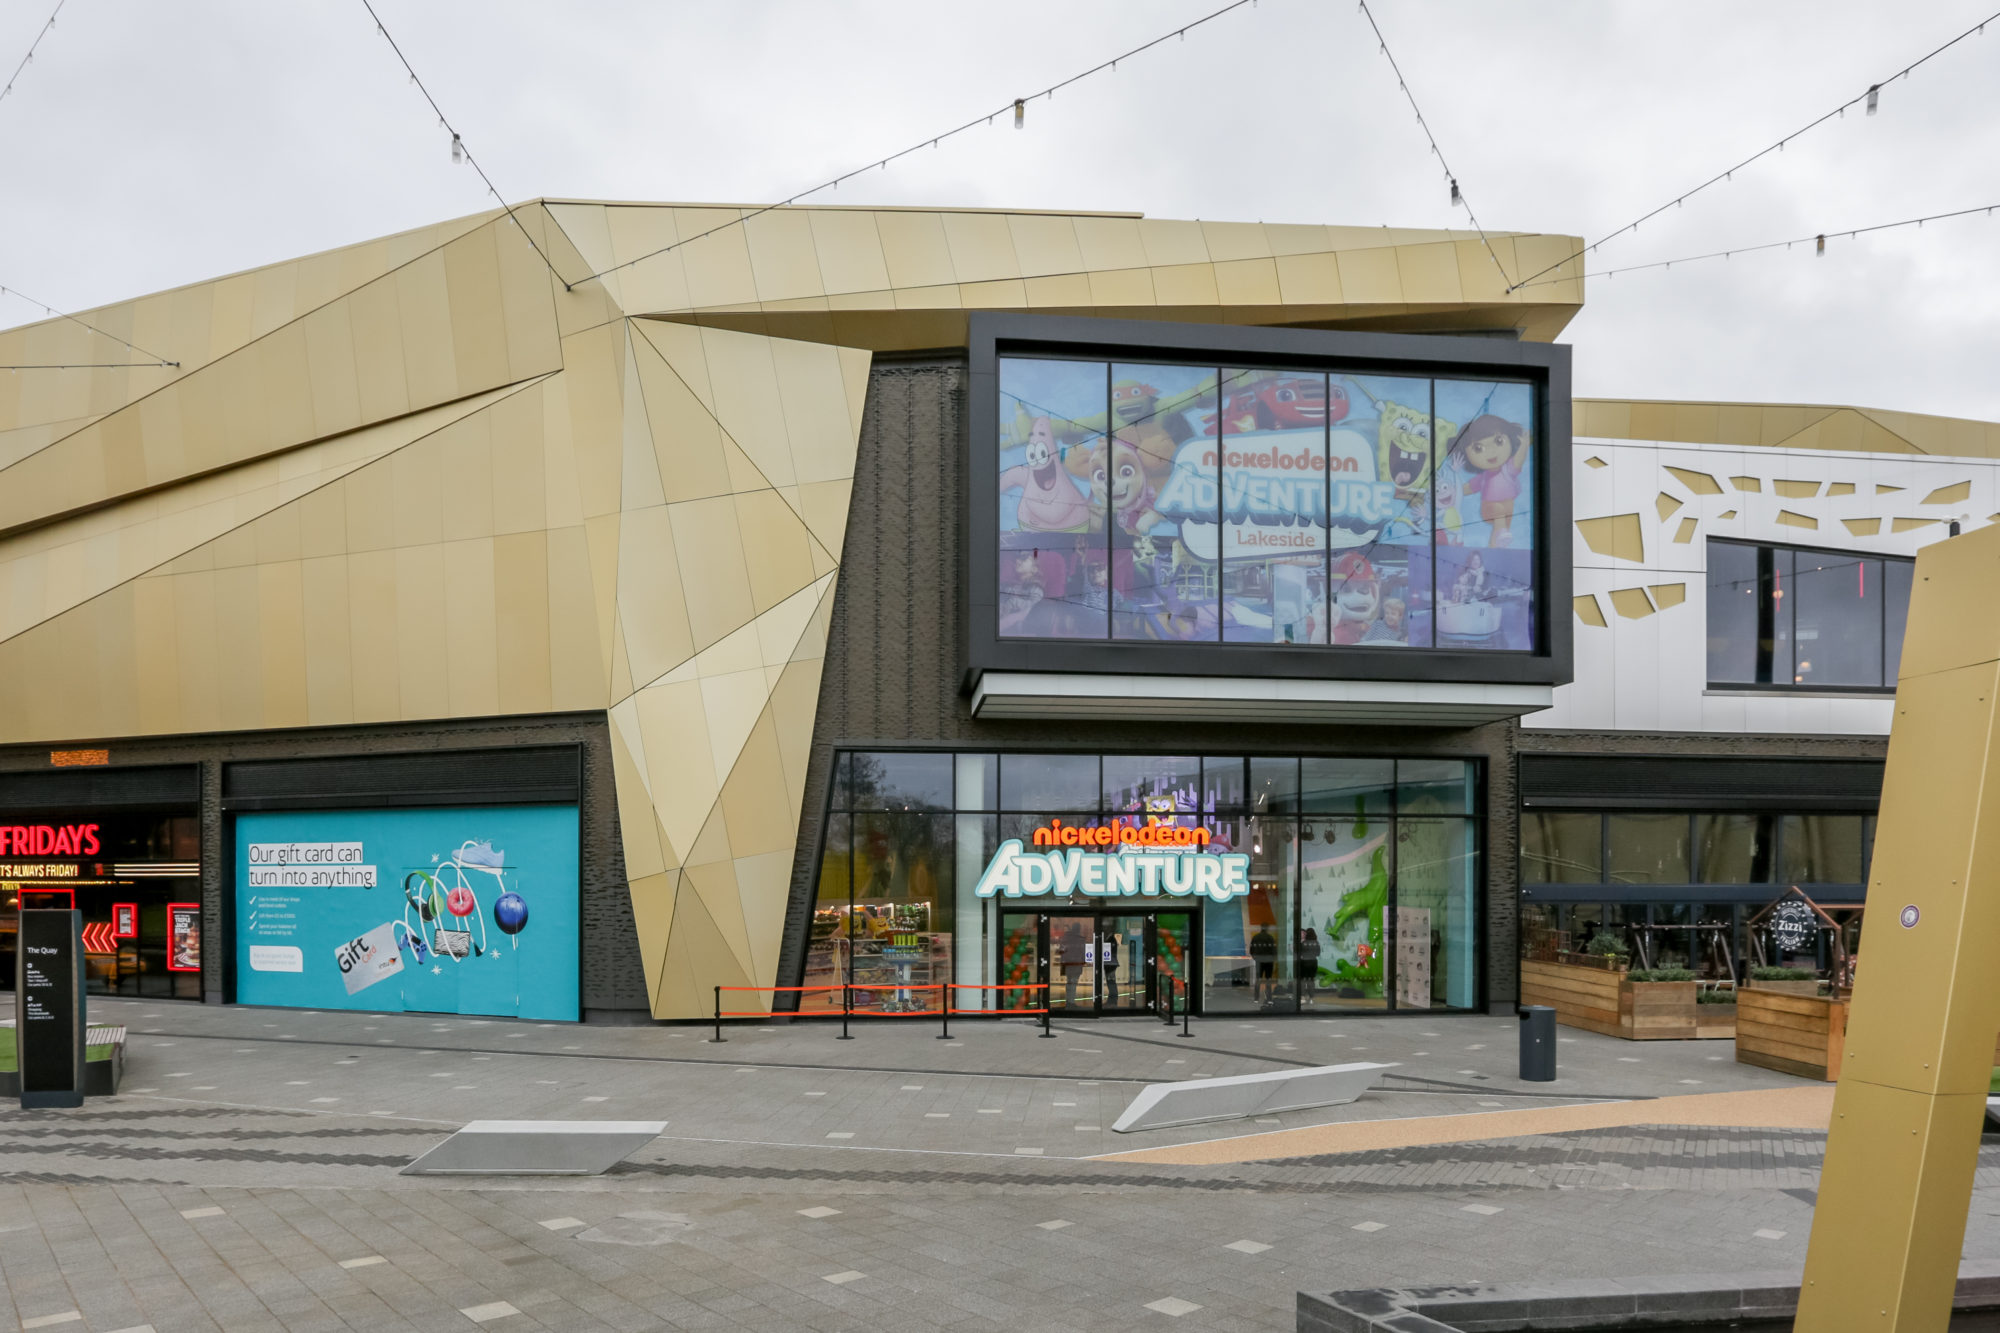 New Indoor Play Experience Nickelodeon Adventure Opens Its Doors At Intu Lakeside Leisure Development Park World Online Theme Park Amusement Park And Attractions Industry News